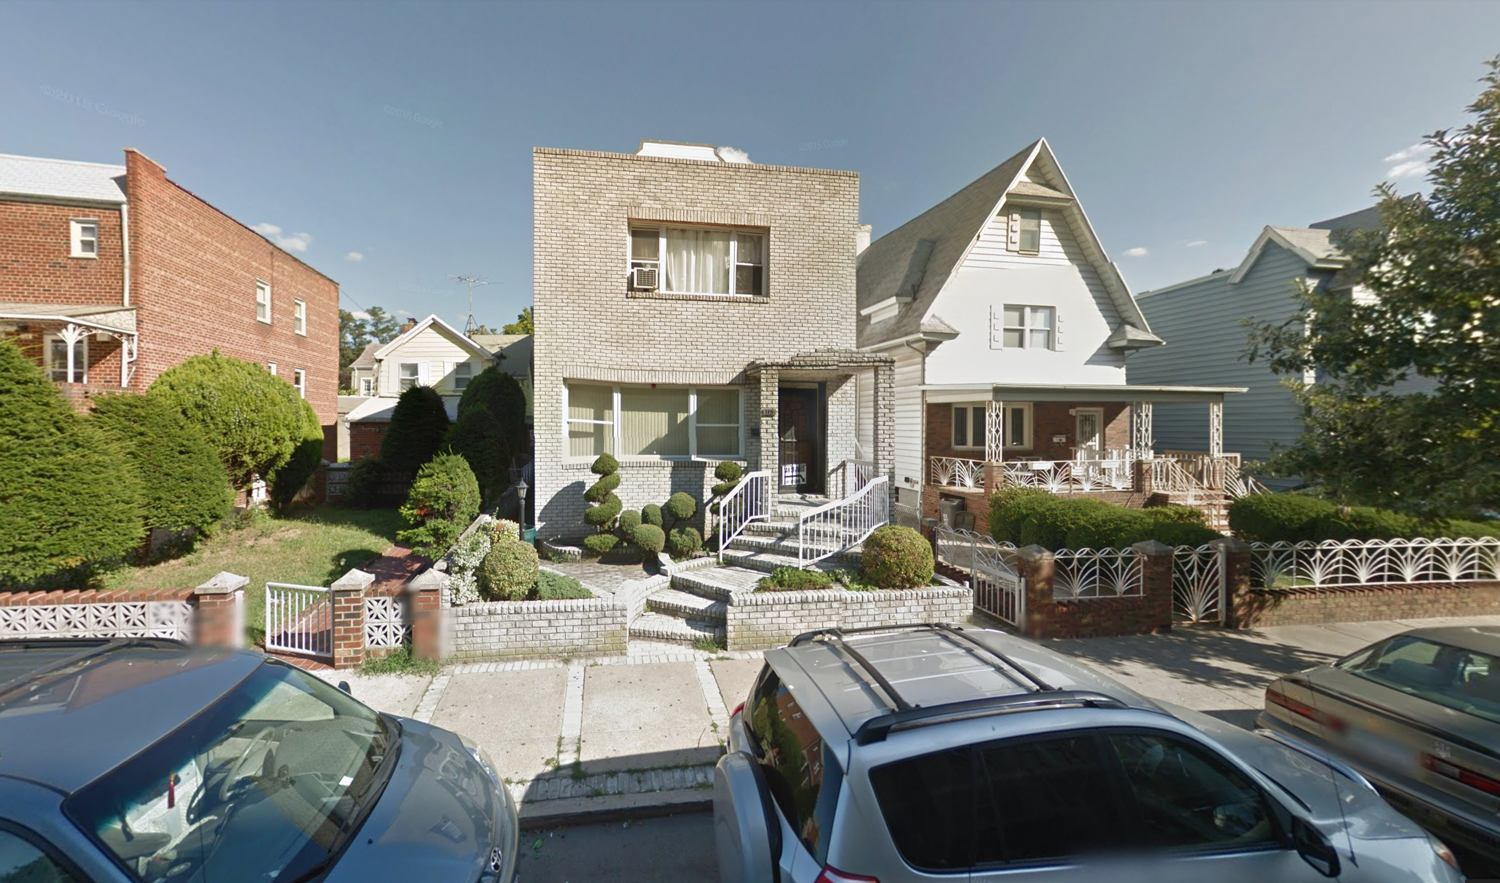 115, 117, and 121 Bay 23rd Street, via Google Maps